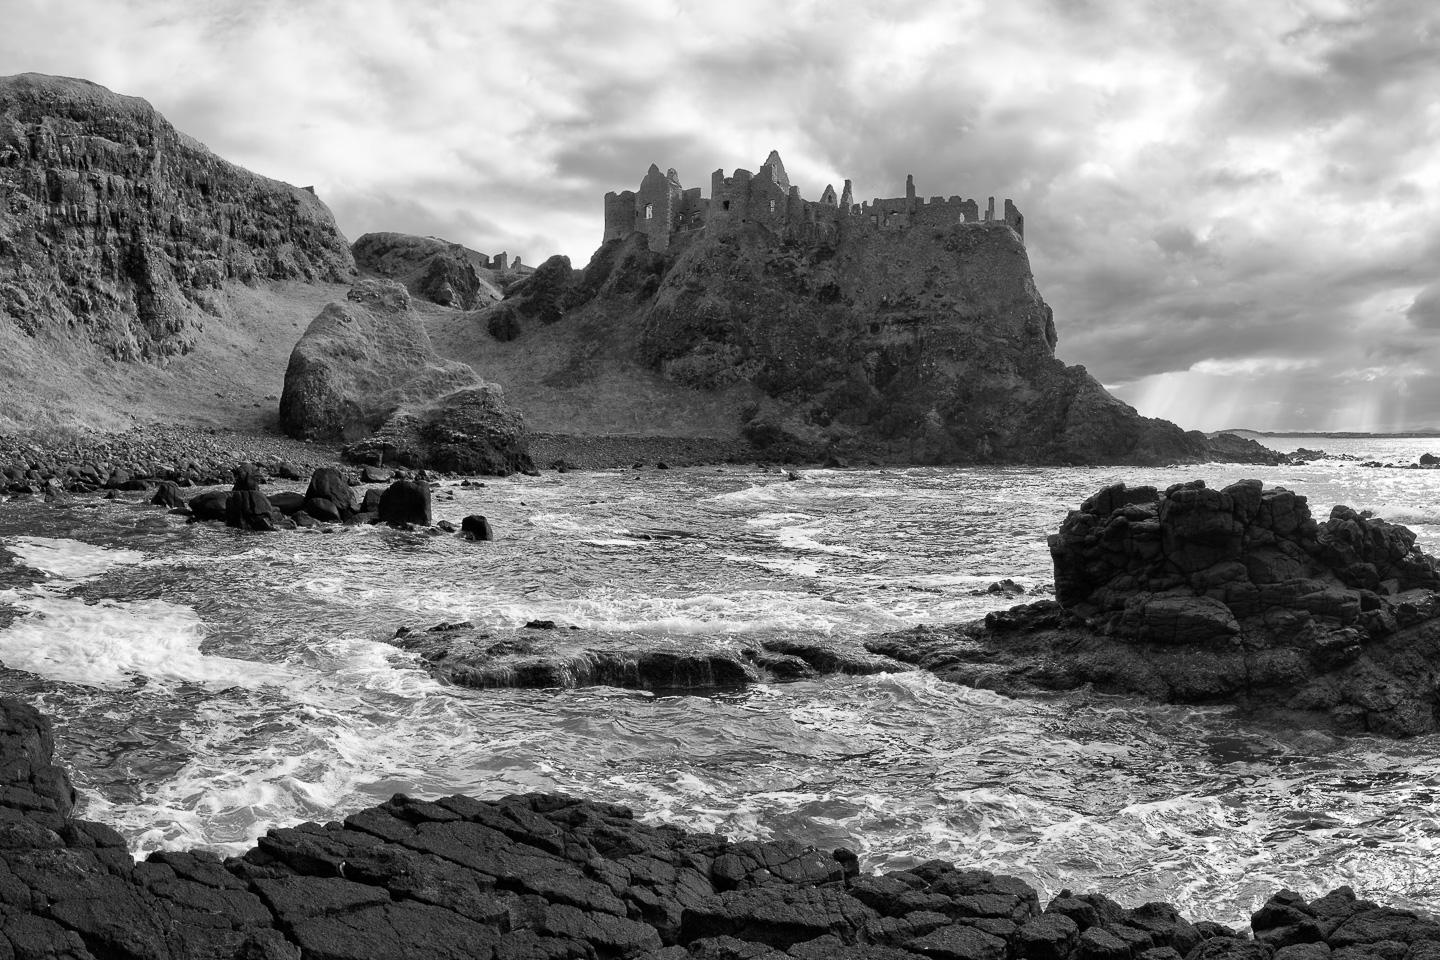 Dunluce-Castle-Landscape-panorama-Northern-Ireland-fine-art_v3.jpg